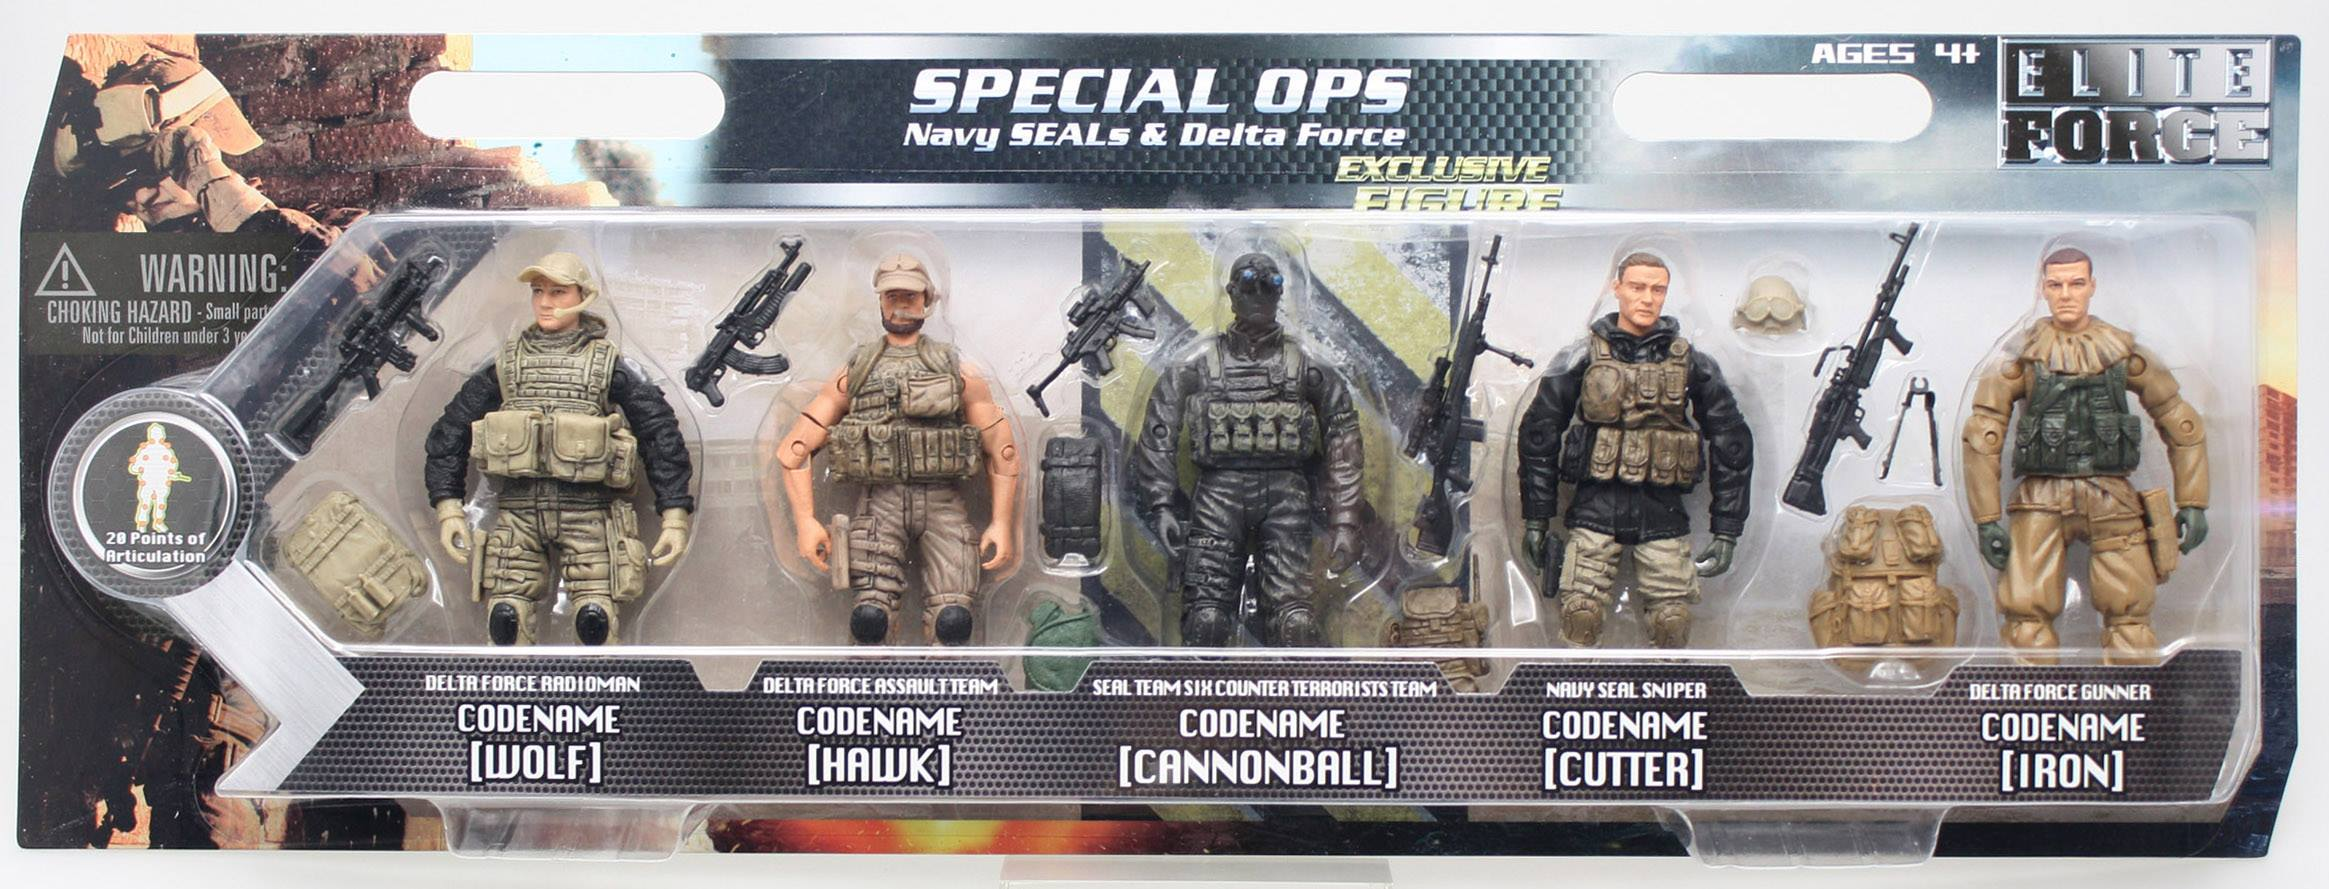 Military Toys Elite Force 1 18 : Elite force action figures for arc d b r c racing